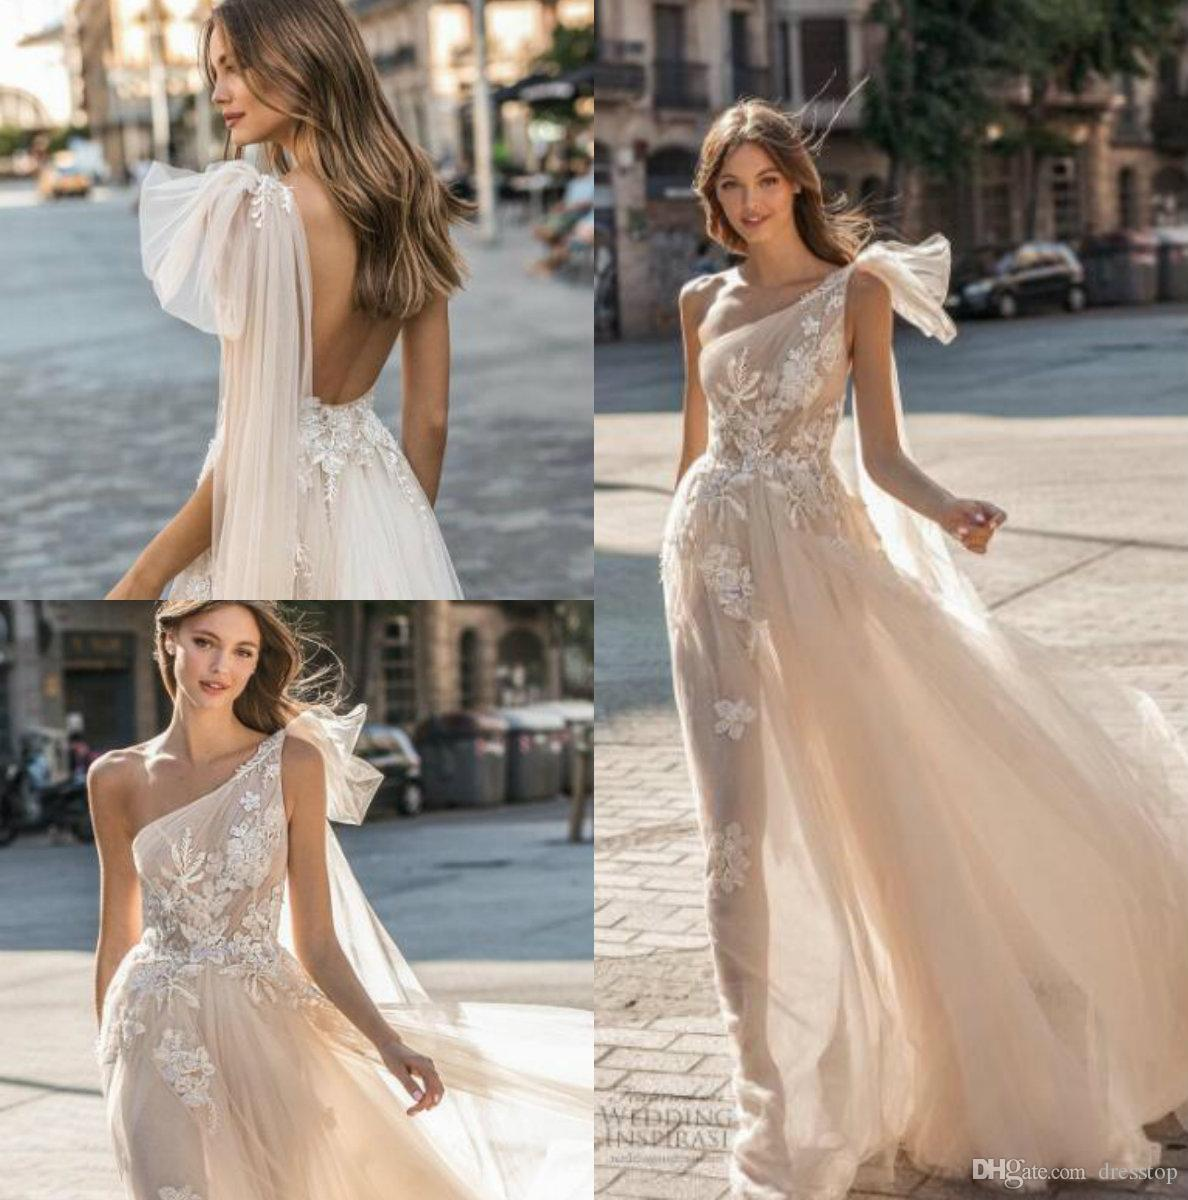 b3e77817c11 Discount Muse By Berta 2019 Wedding Dresses One Shoulder Backless Bridal  Gown Appliqued A Line Beach Boho Simple See Through Wedding Dress Luxurious  Wedding ...